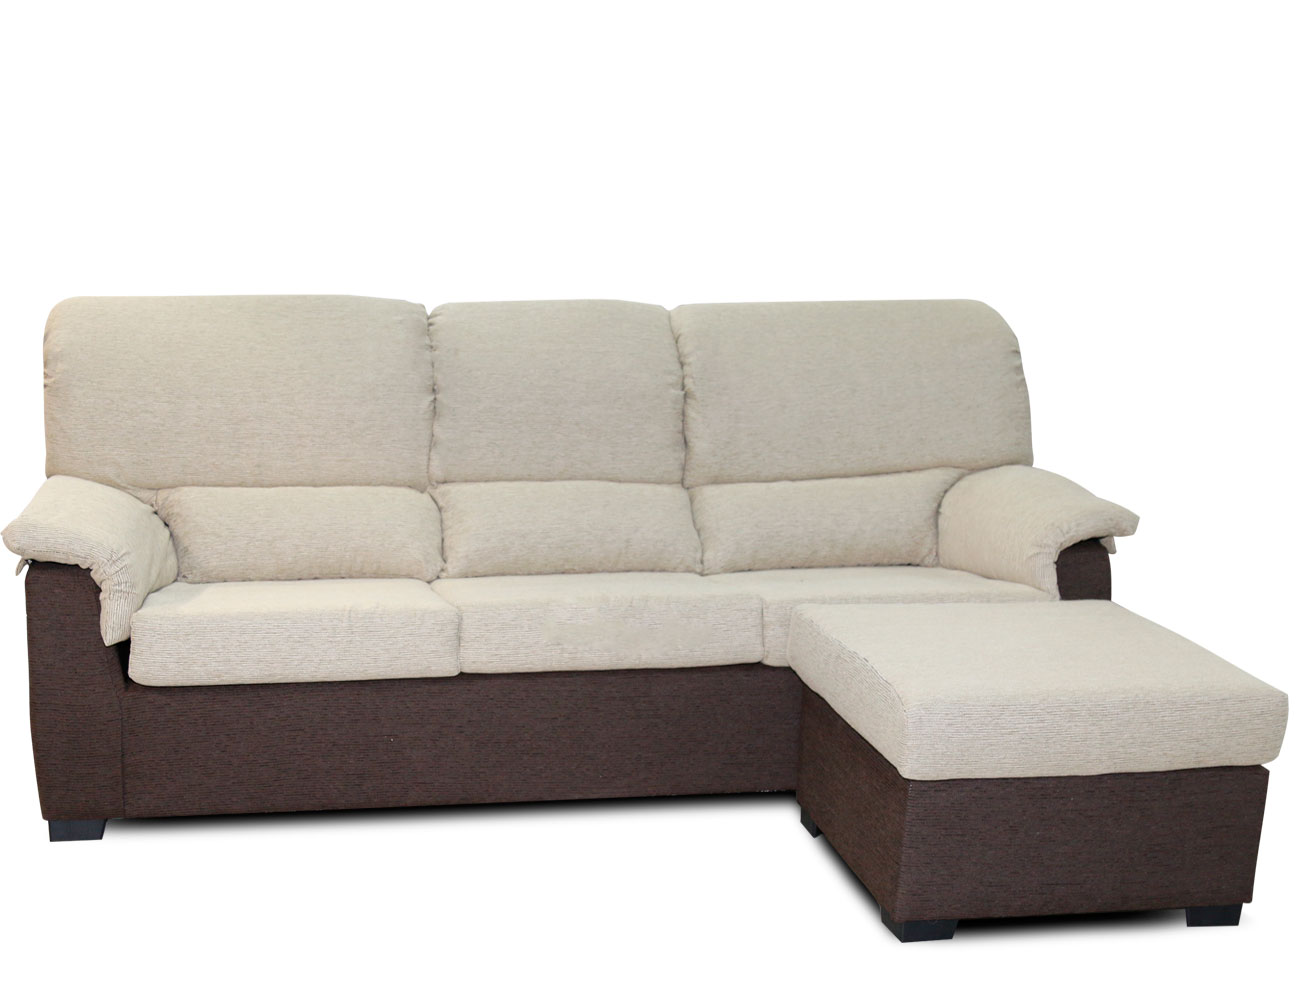 Sof chaiselongue barato con puf reversible 15285 for Sofa cama puff barato